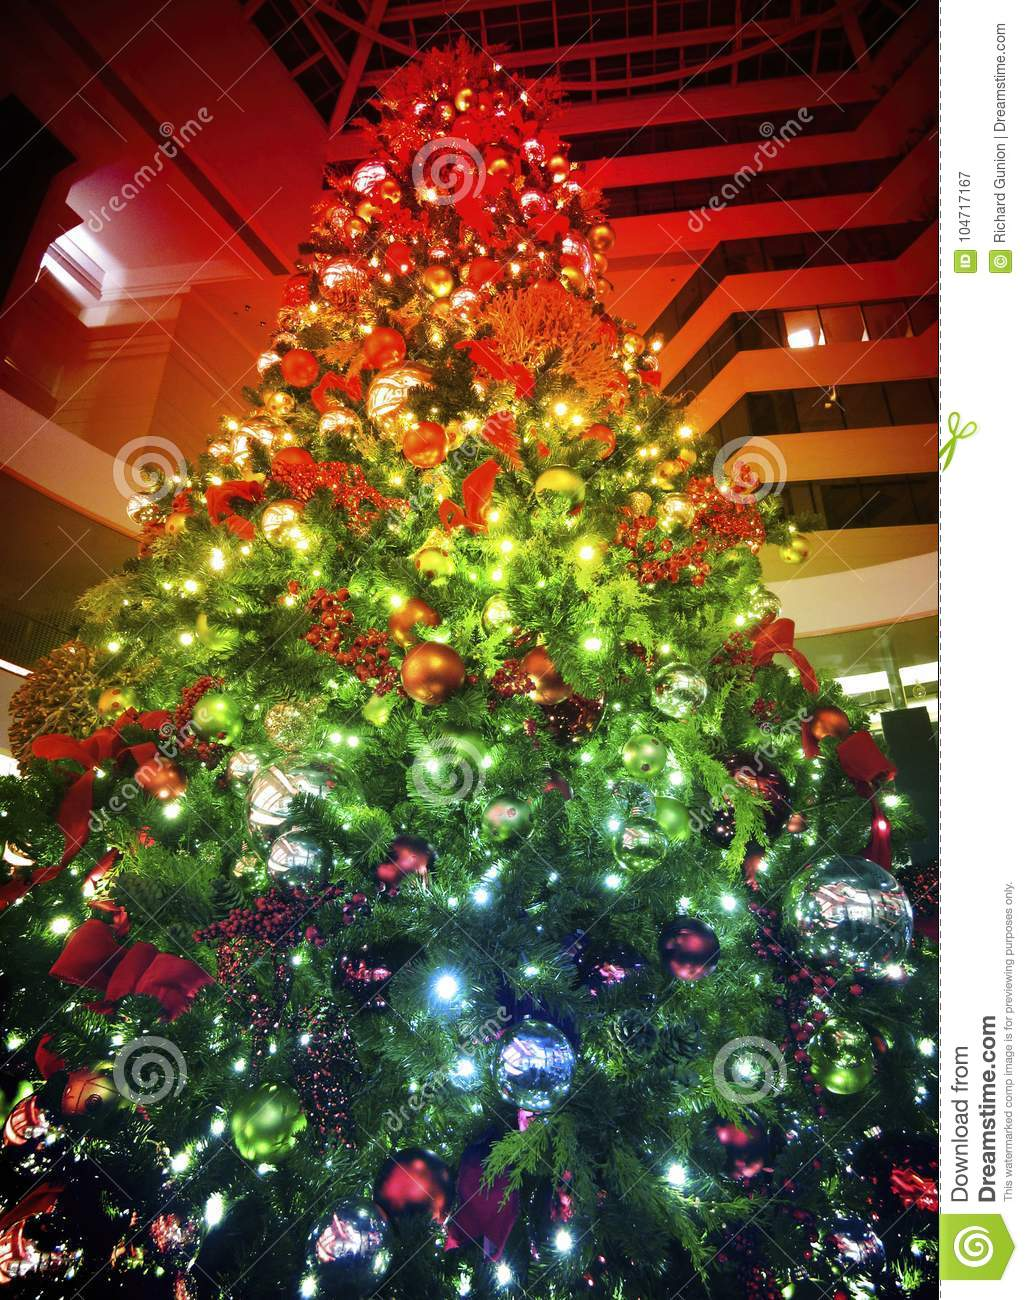 Rainbow Colors Of Christmas Stock Image Image Of Decorations